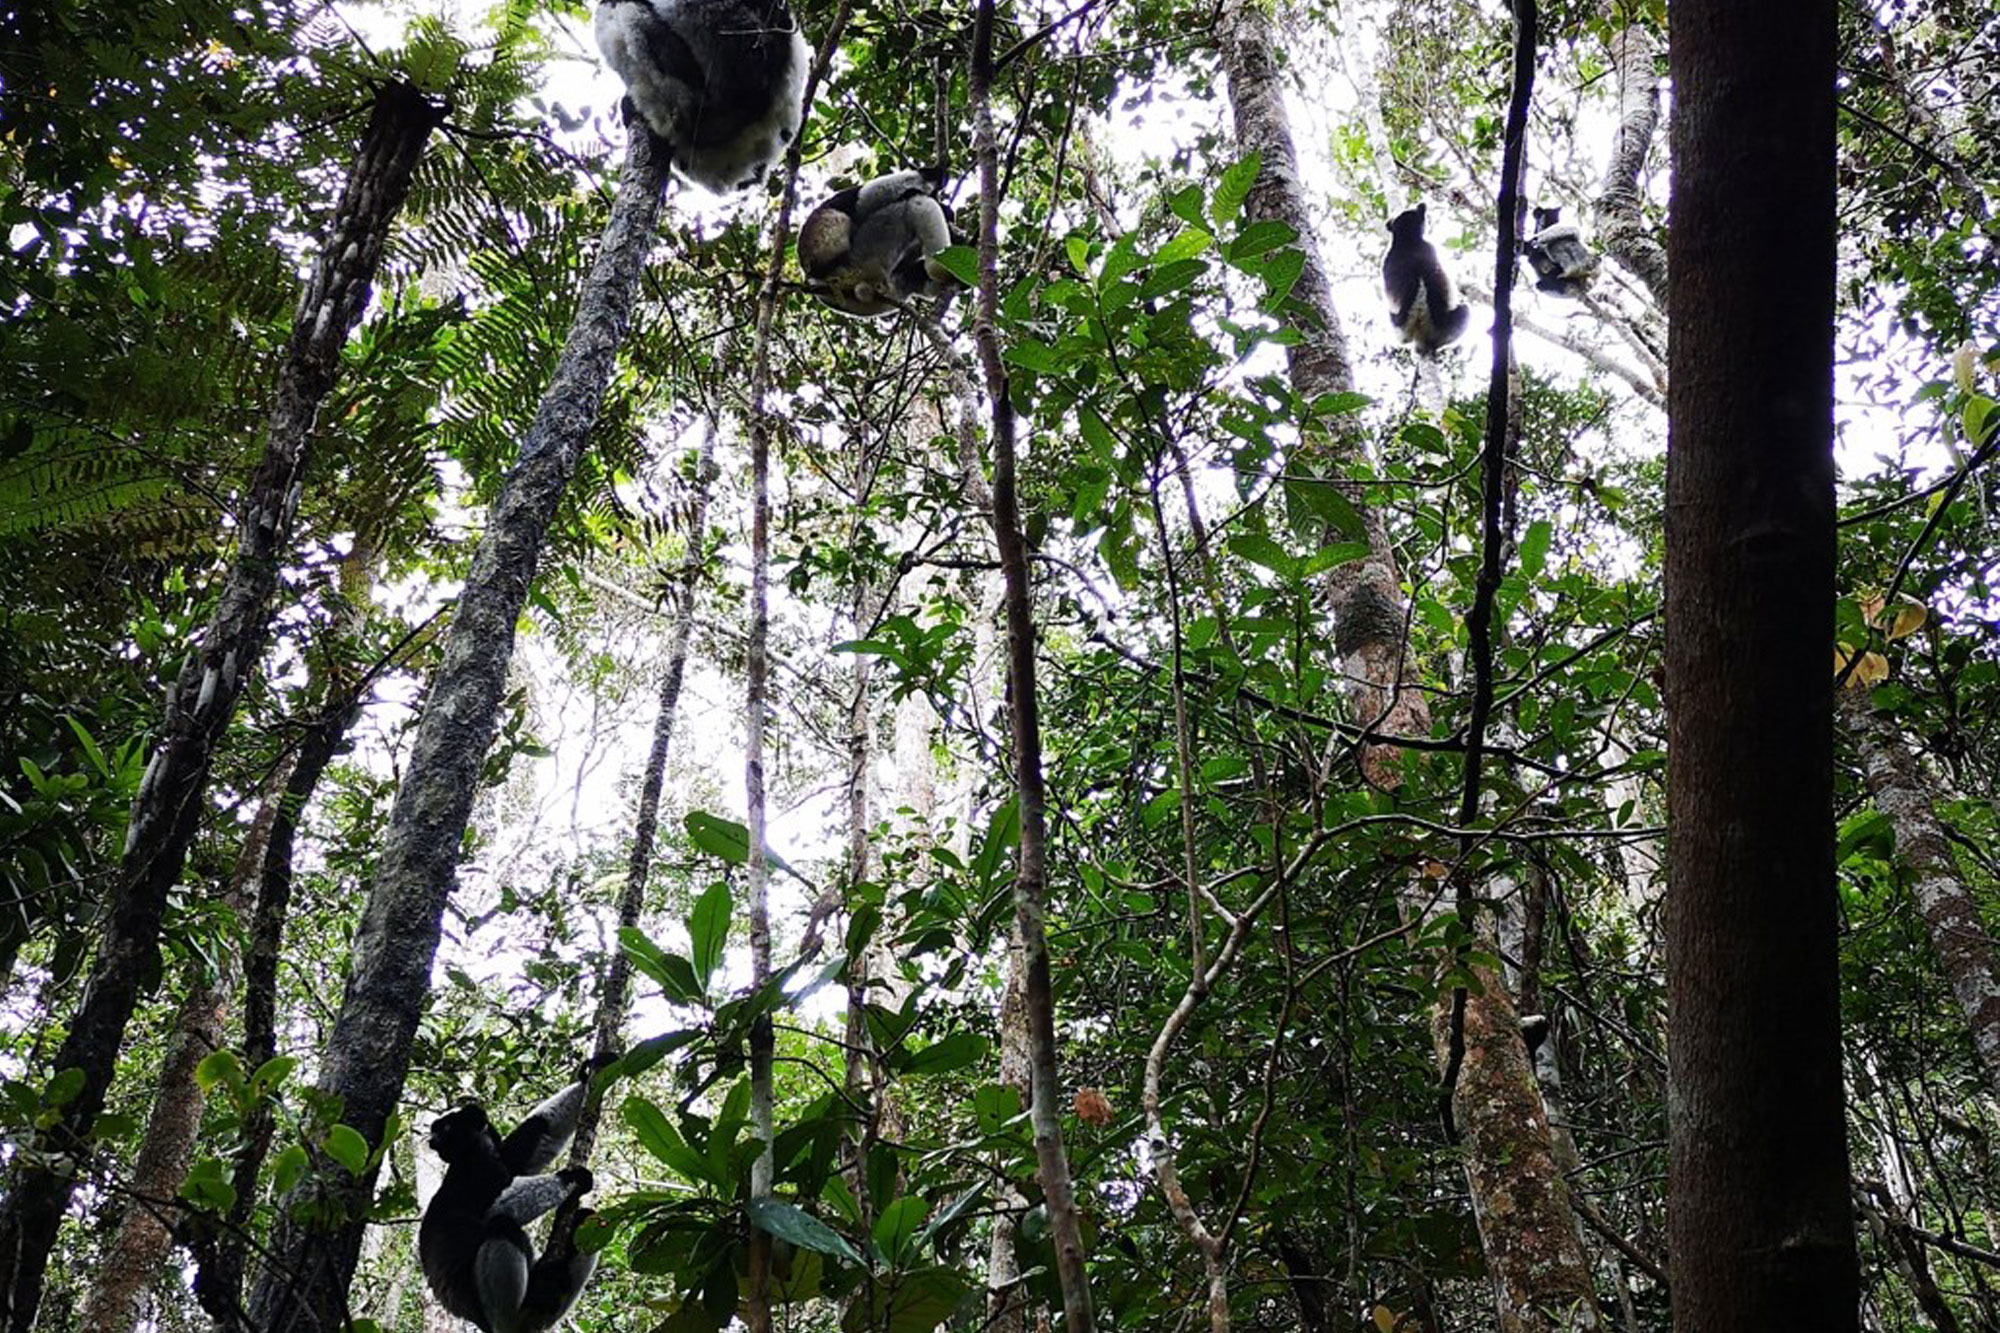 Indri lemurs in the forest canopy